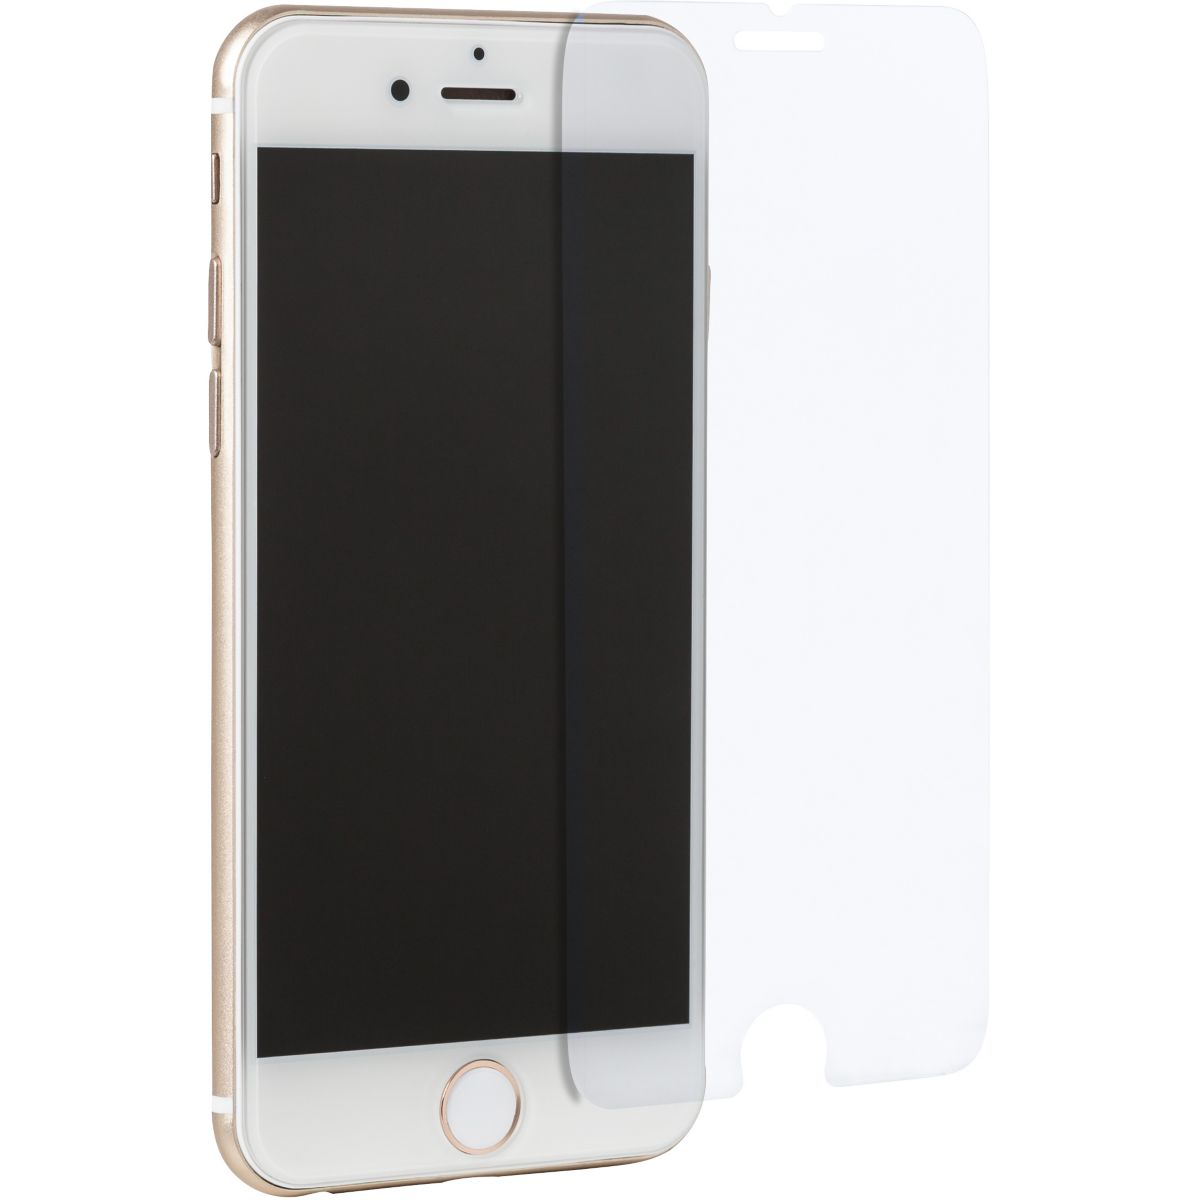 Coque + Protège écran ESSENTIELB iPhone 6/6 Plus Coque+Verre+Applicateur (photo)